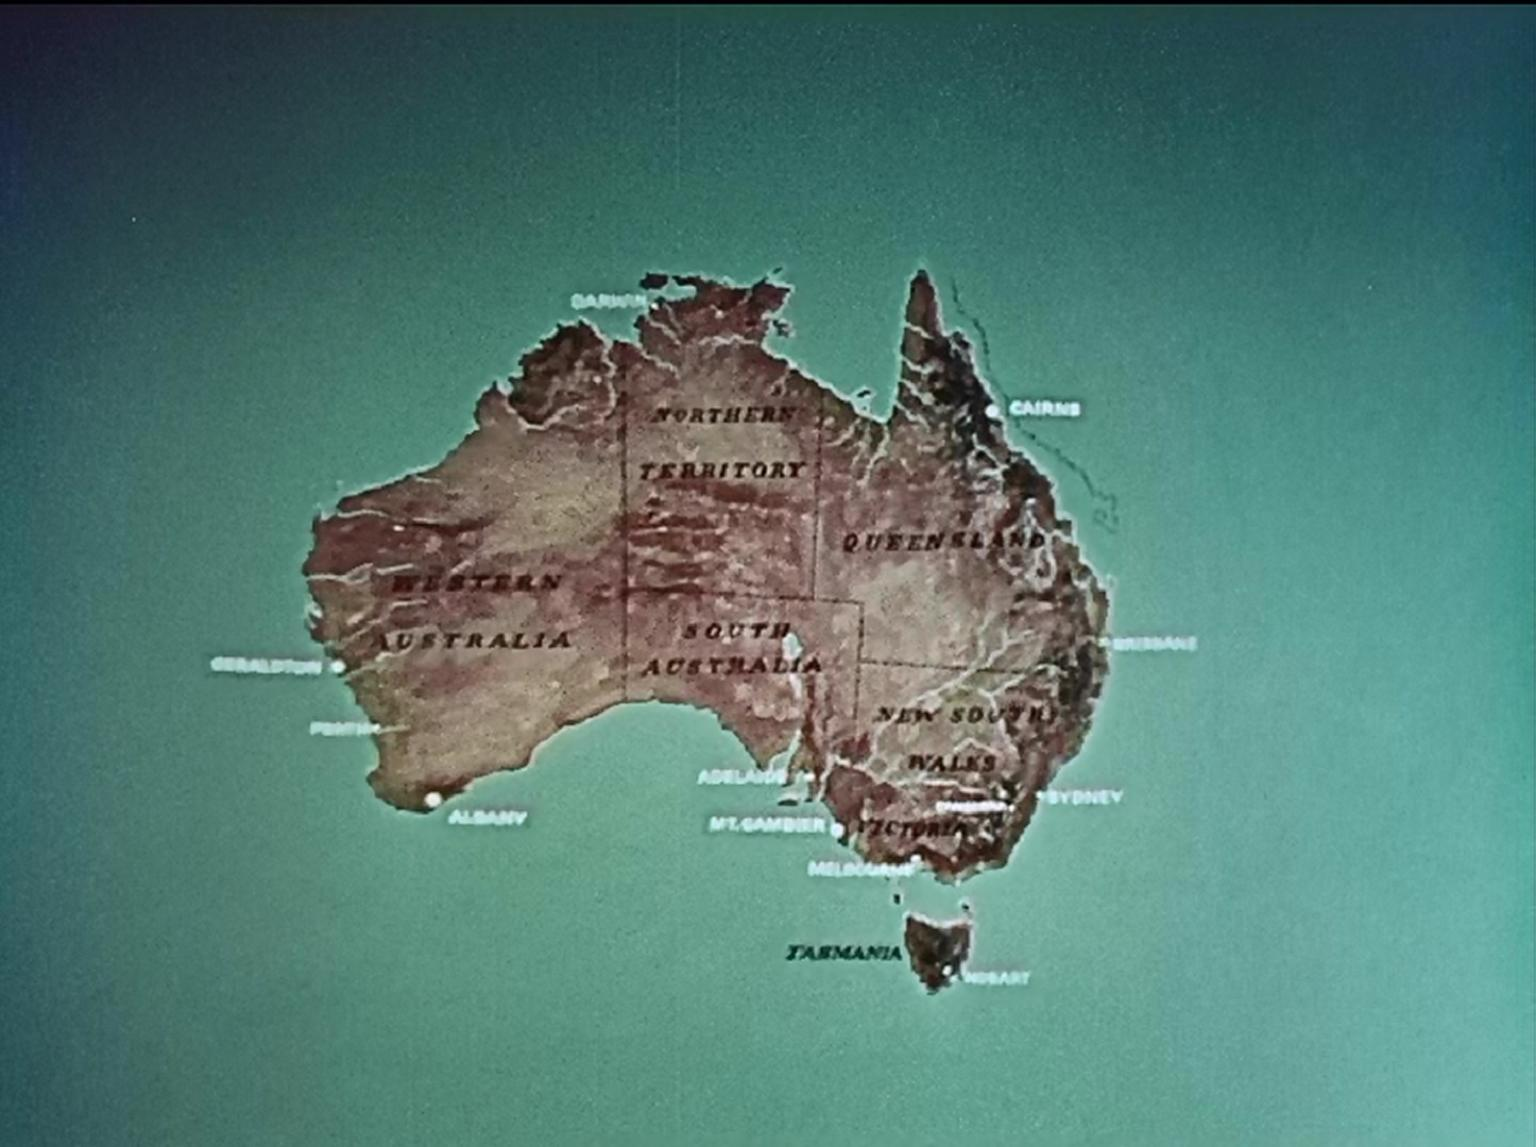 Map of Australia, showing names of its capital cities, regional centres, states and territories